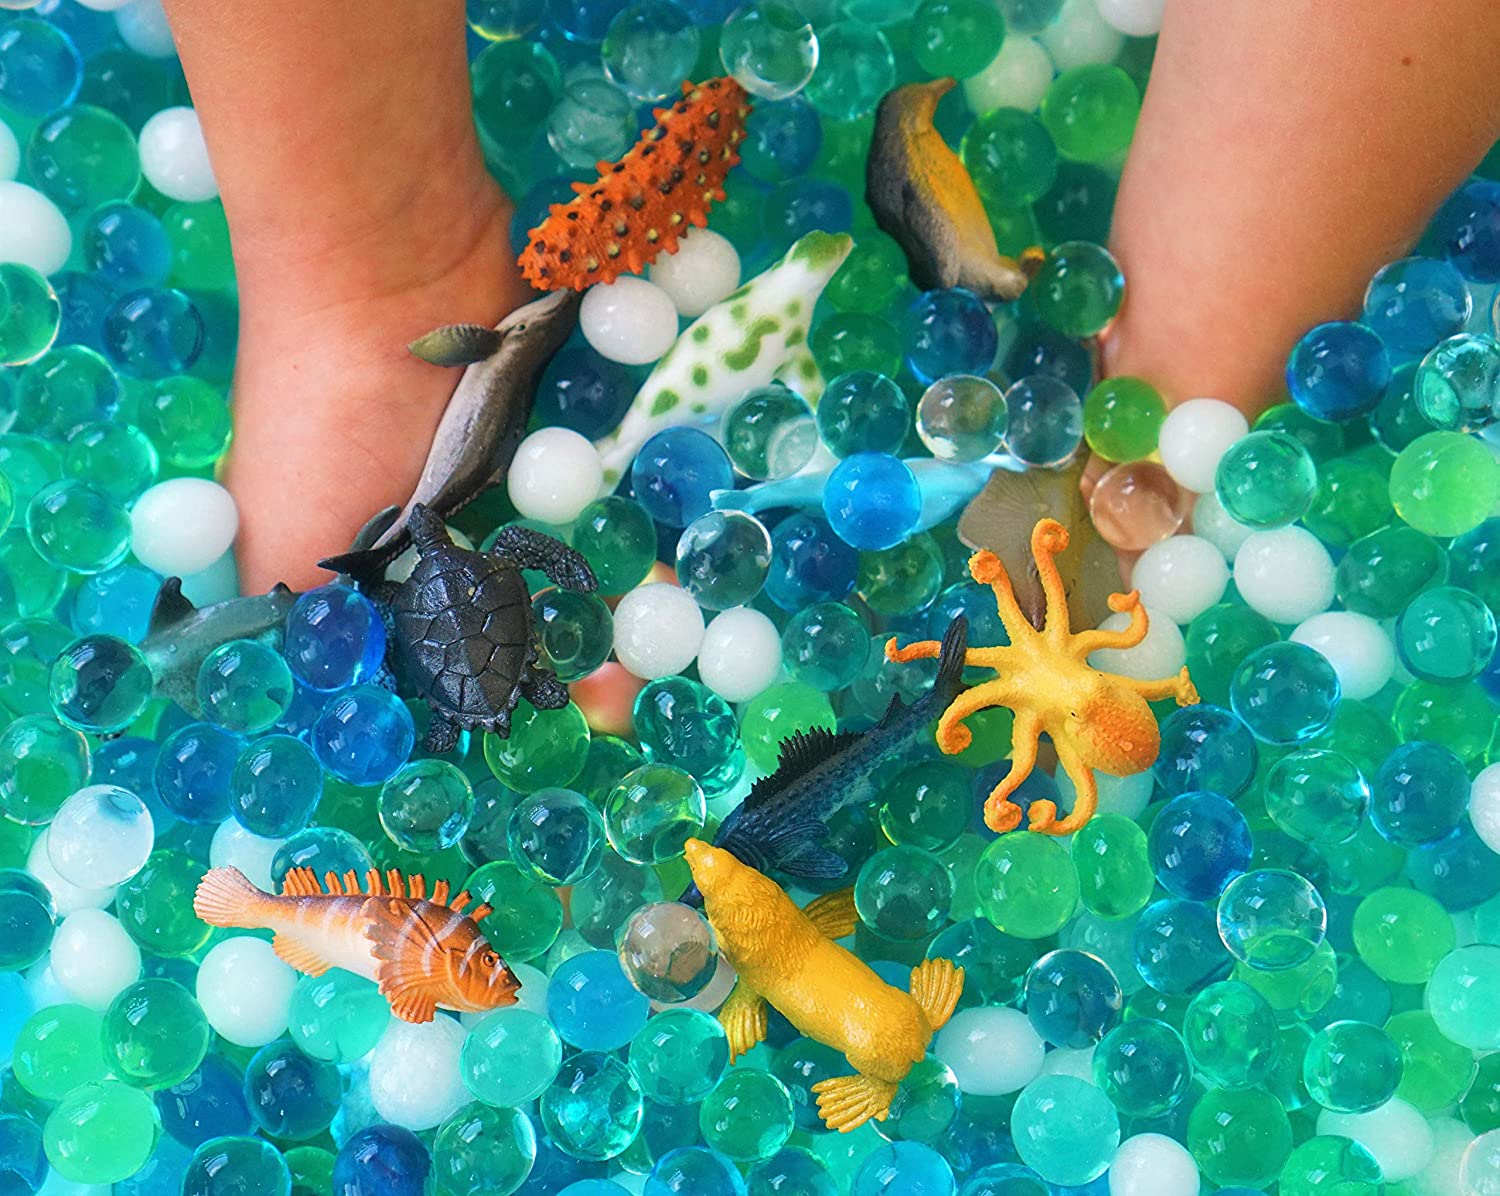 SENSORY4U Dew Drops Water Beads Ocean Explorers Tactile Sensory Kit - Sea Animal Creatures Included - Great Fine Motor Skills Toy for Kids Glamping Gadgets